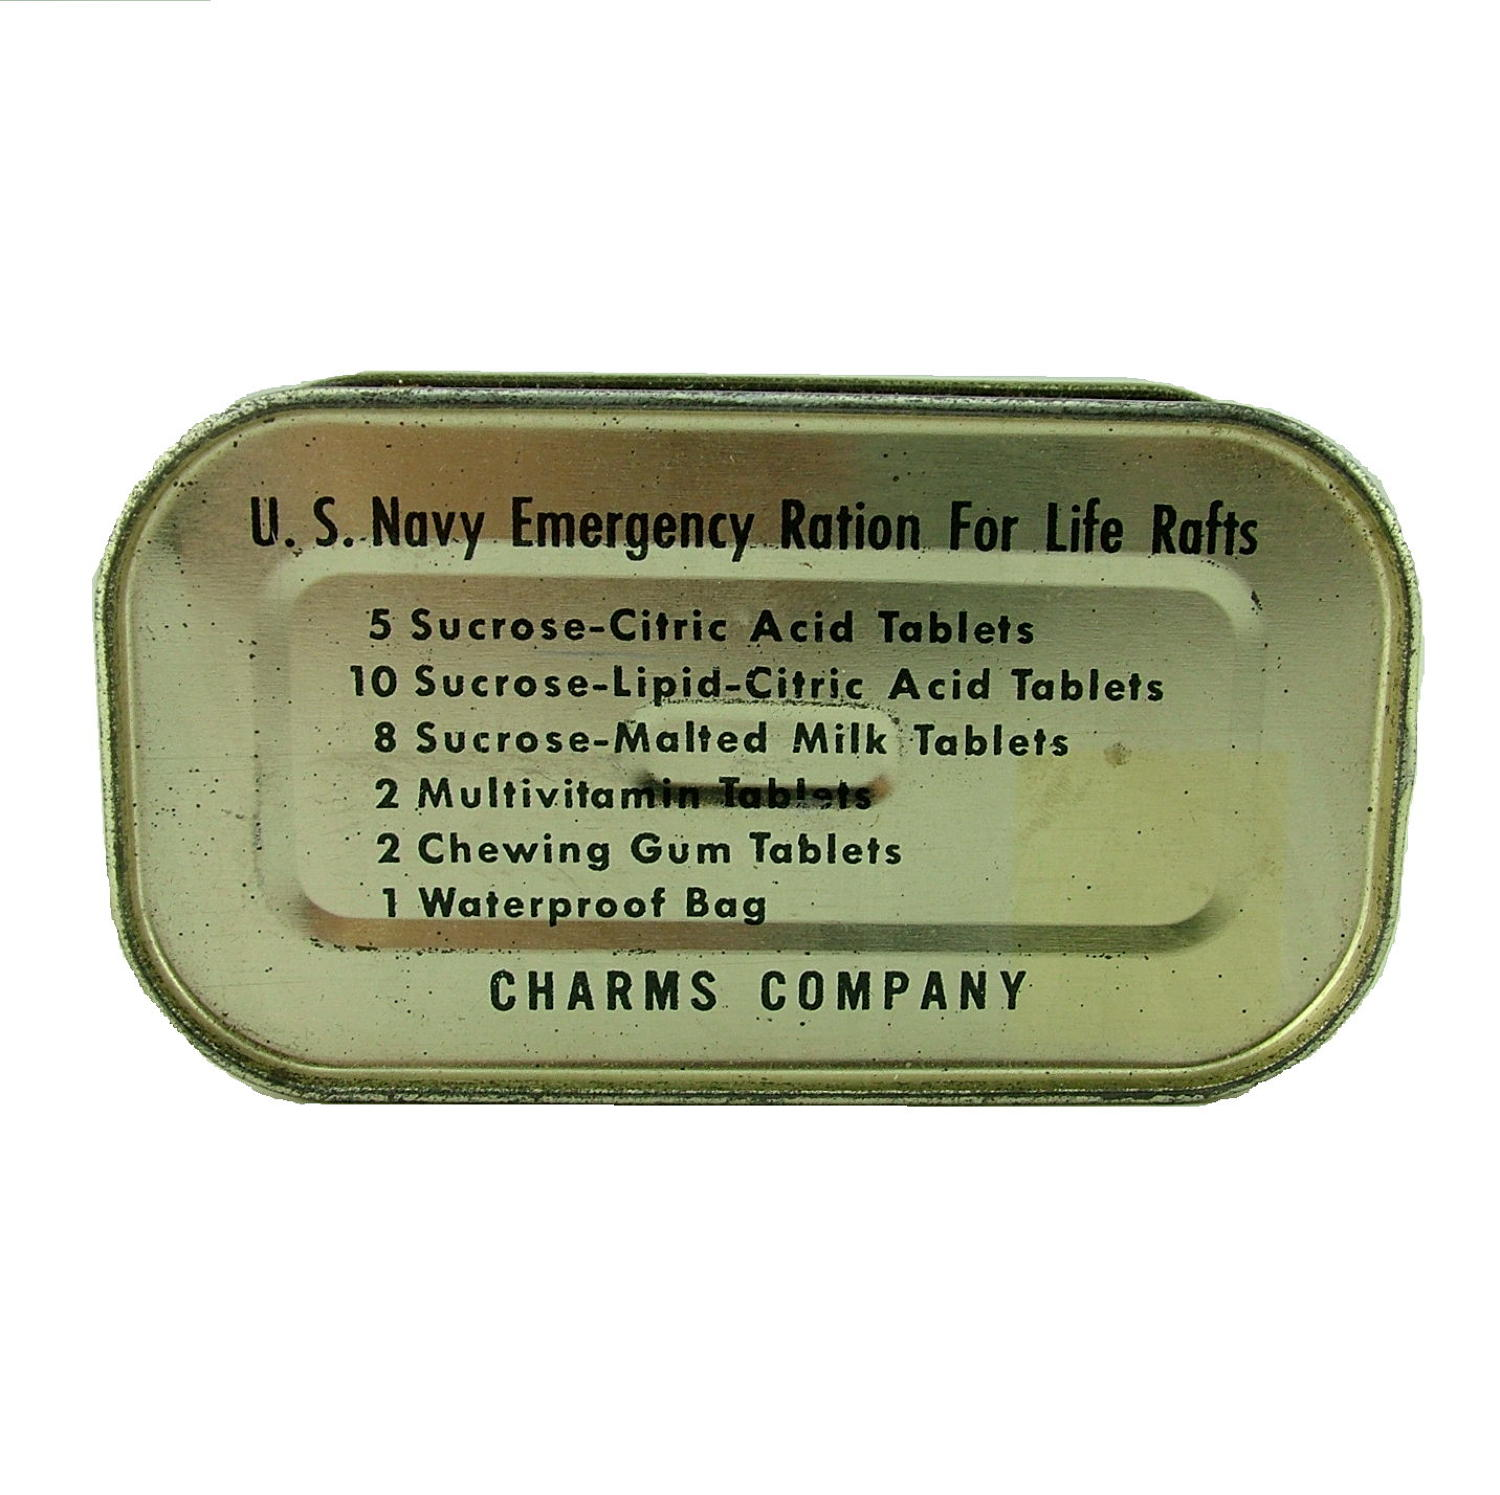 USN Emergency ration for life rafts